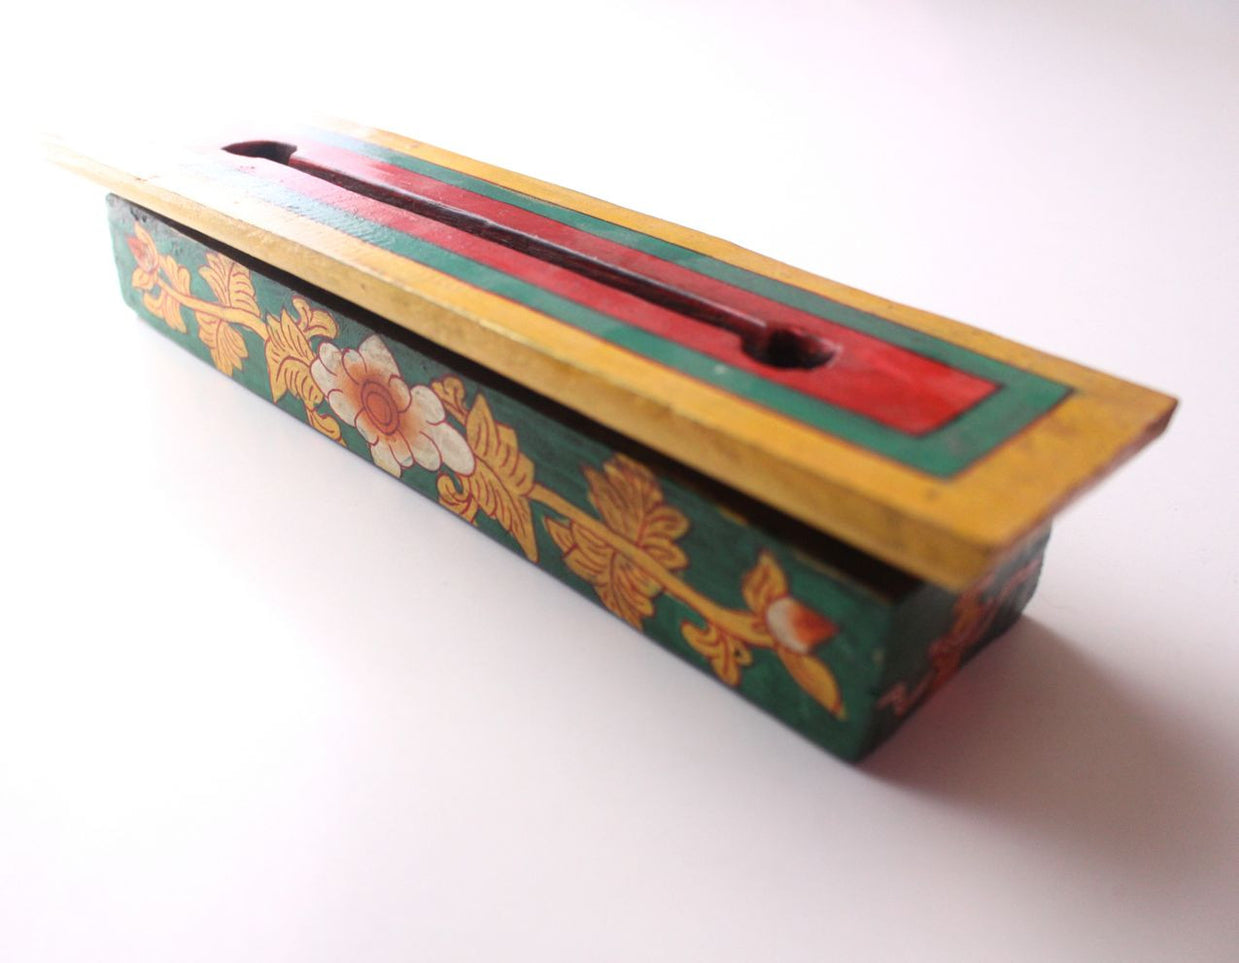 Tibetan Hand Painted Medium Sized Wooden Incense Burner Box